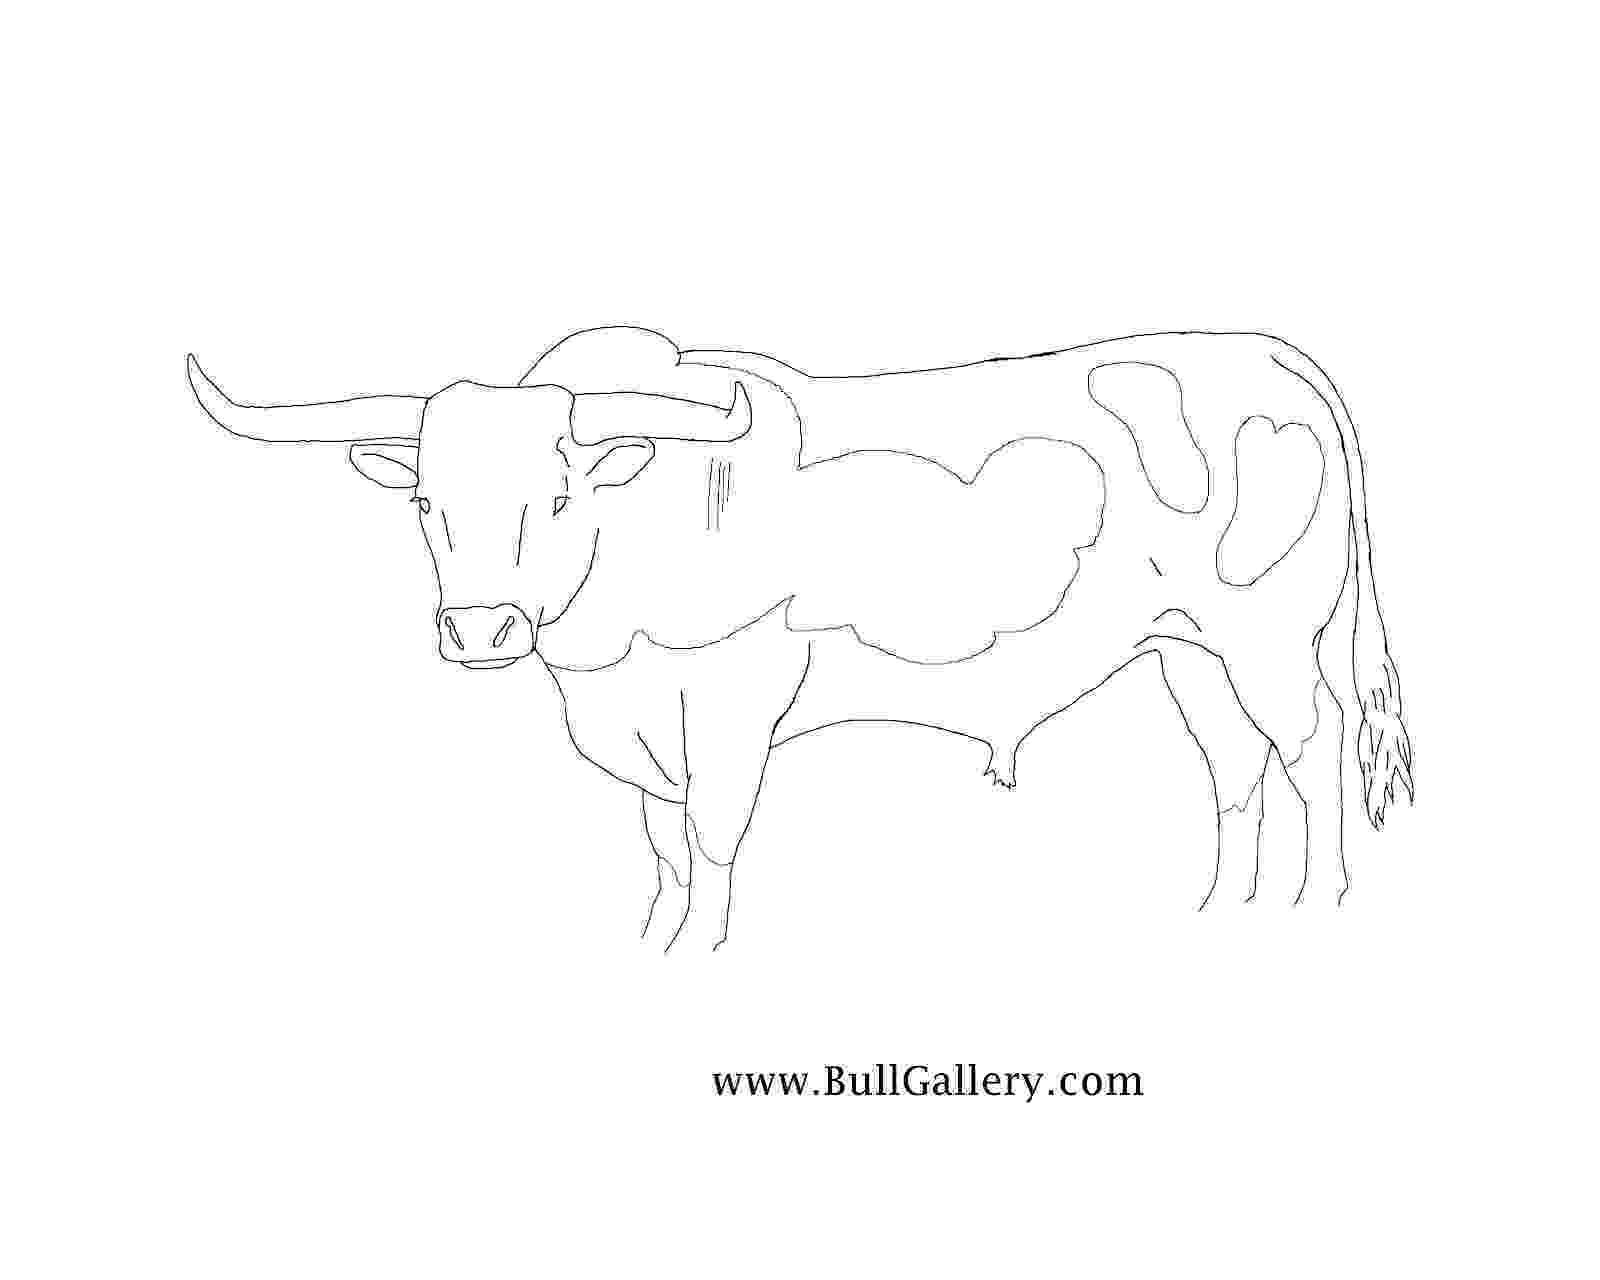 coloring pages of bull riding bull riding coloring pages surfnetkids bull pages riding coloring of